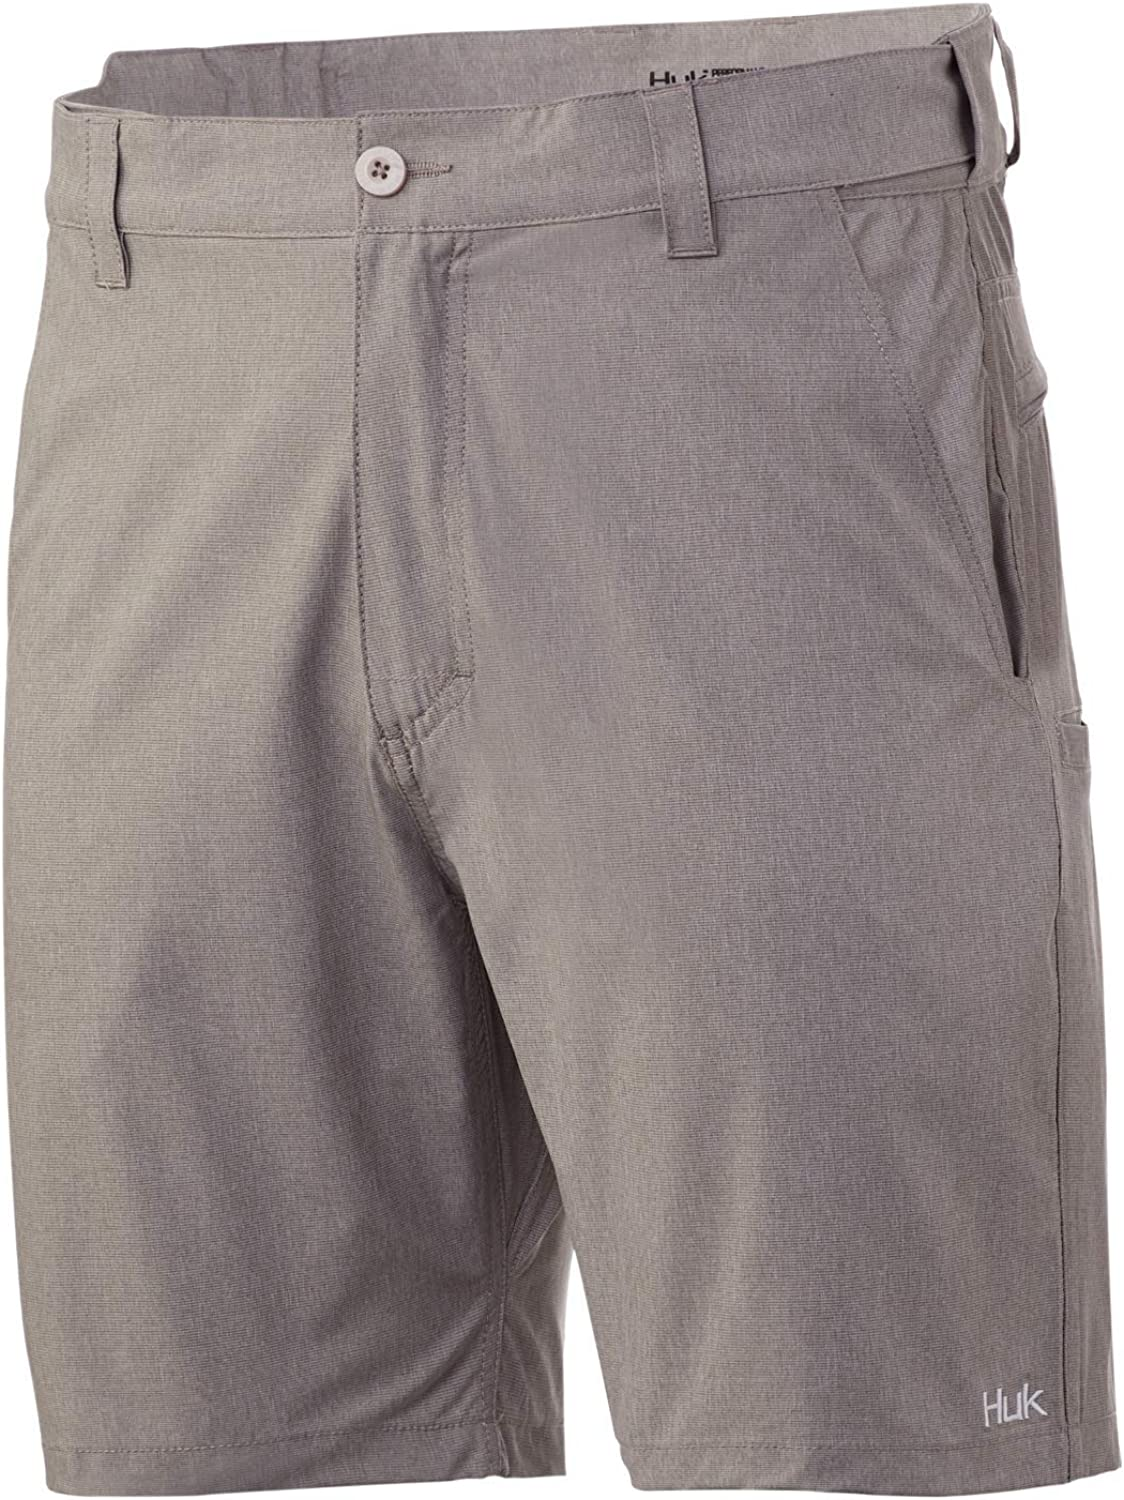 HUK Mens Beacon Short | Quick-Drying Performance Fishing Shorts with UPF 30+ Sun Protection